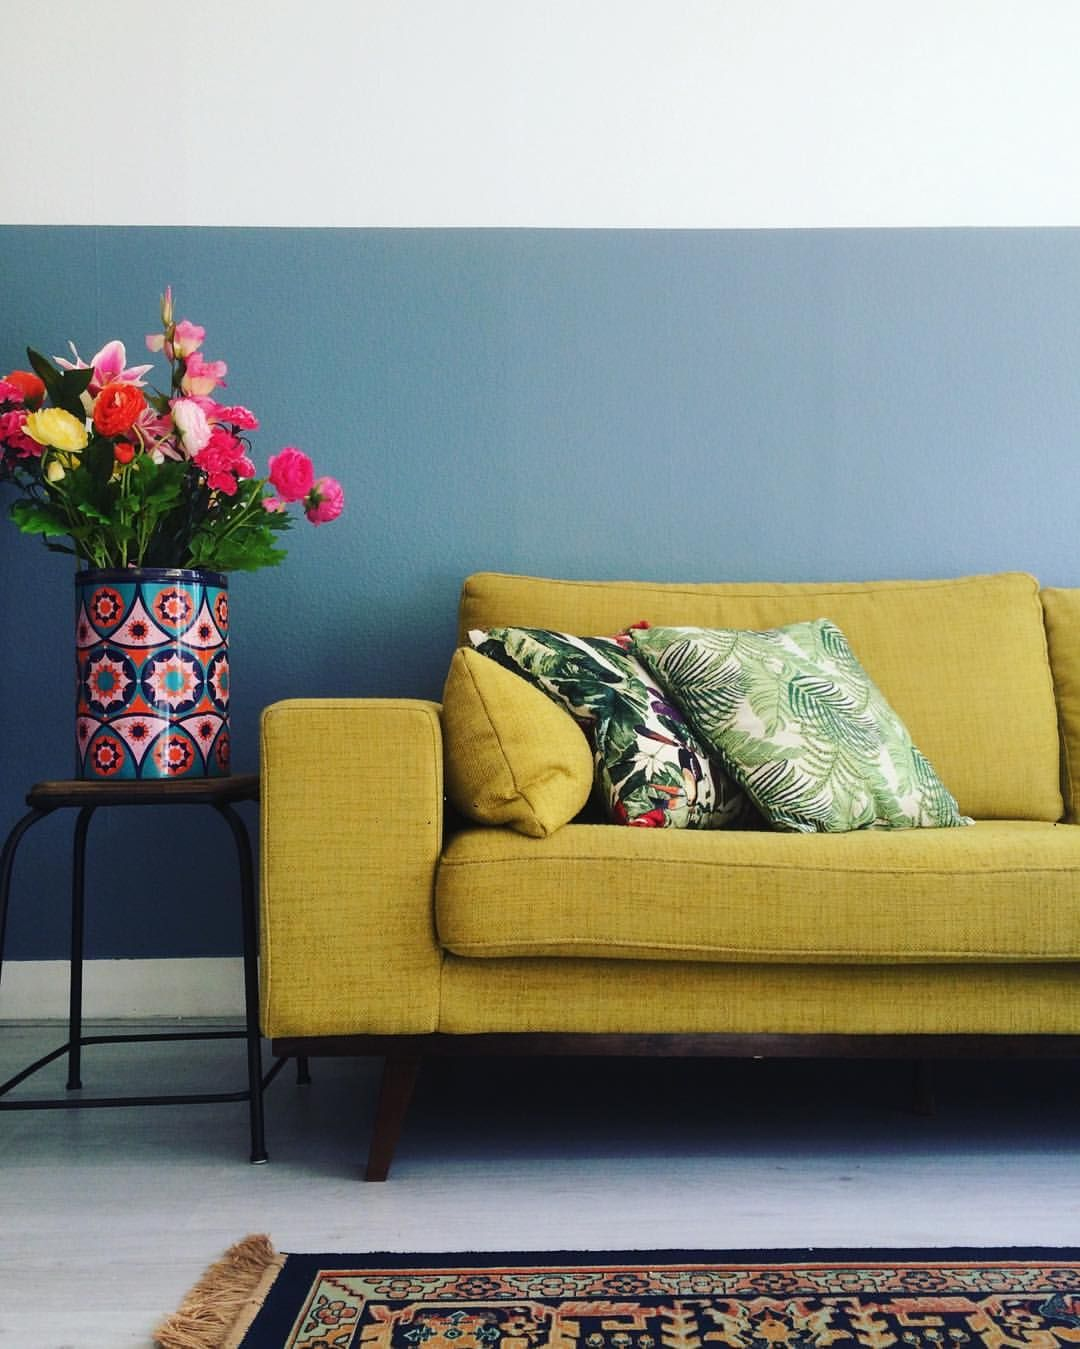 Grey Half Couch Half Painted Wall In Flexa Denim Drift Mustard Yellow